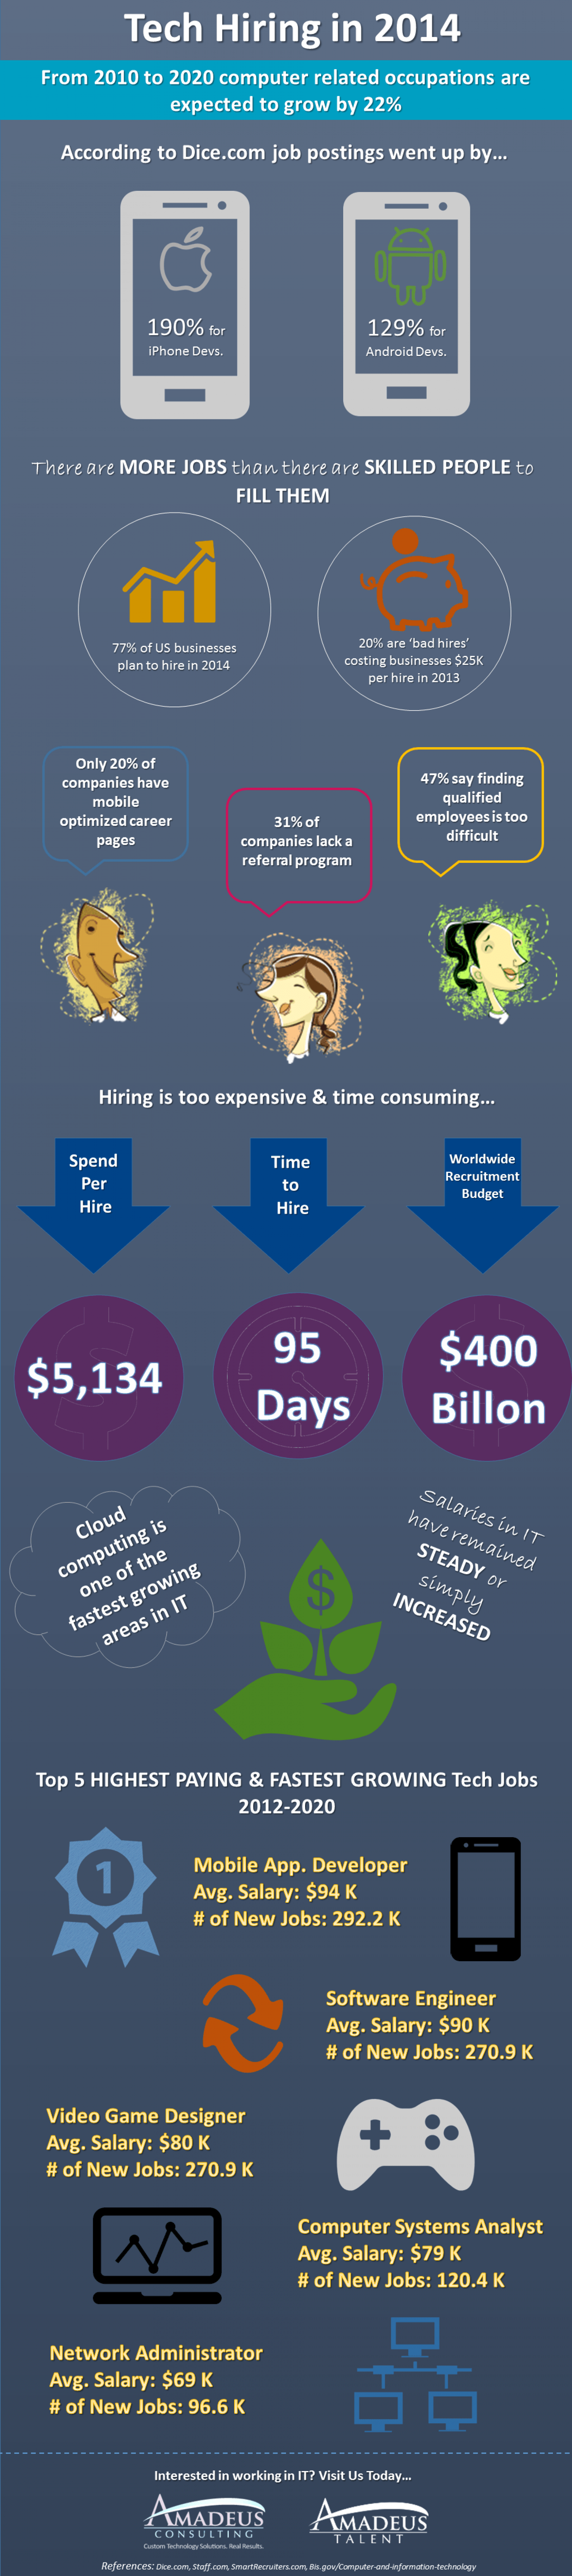 Tech Hiring in 2014 Infographic